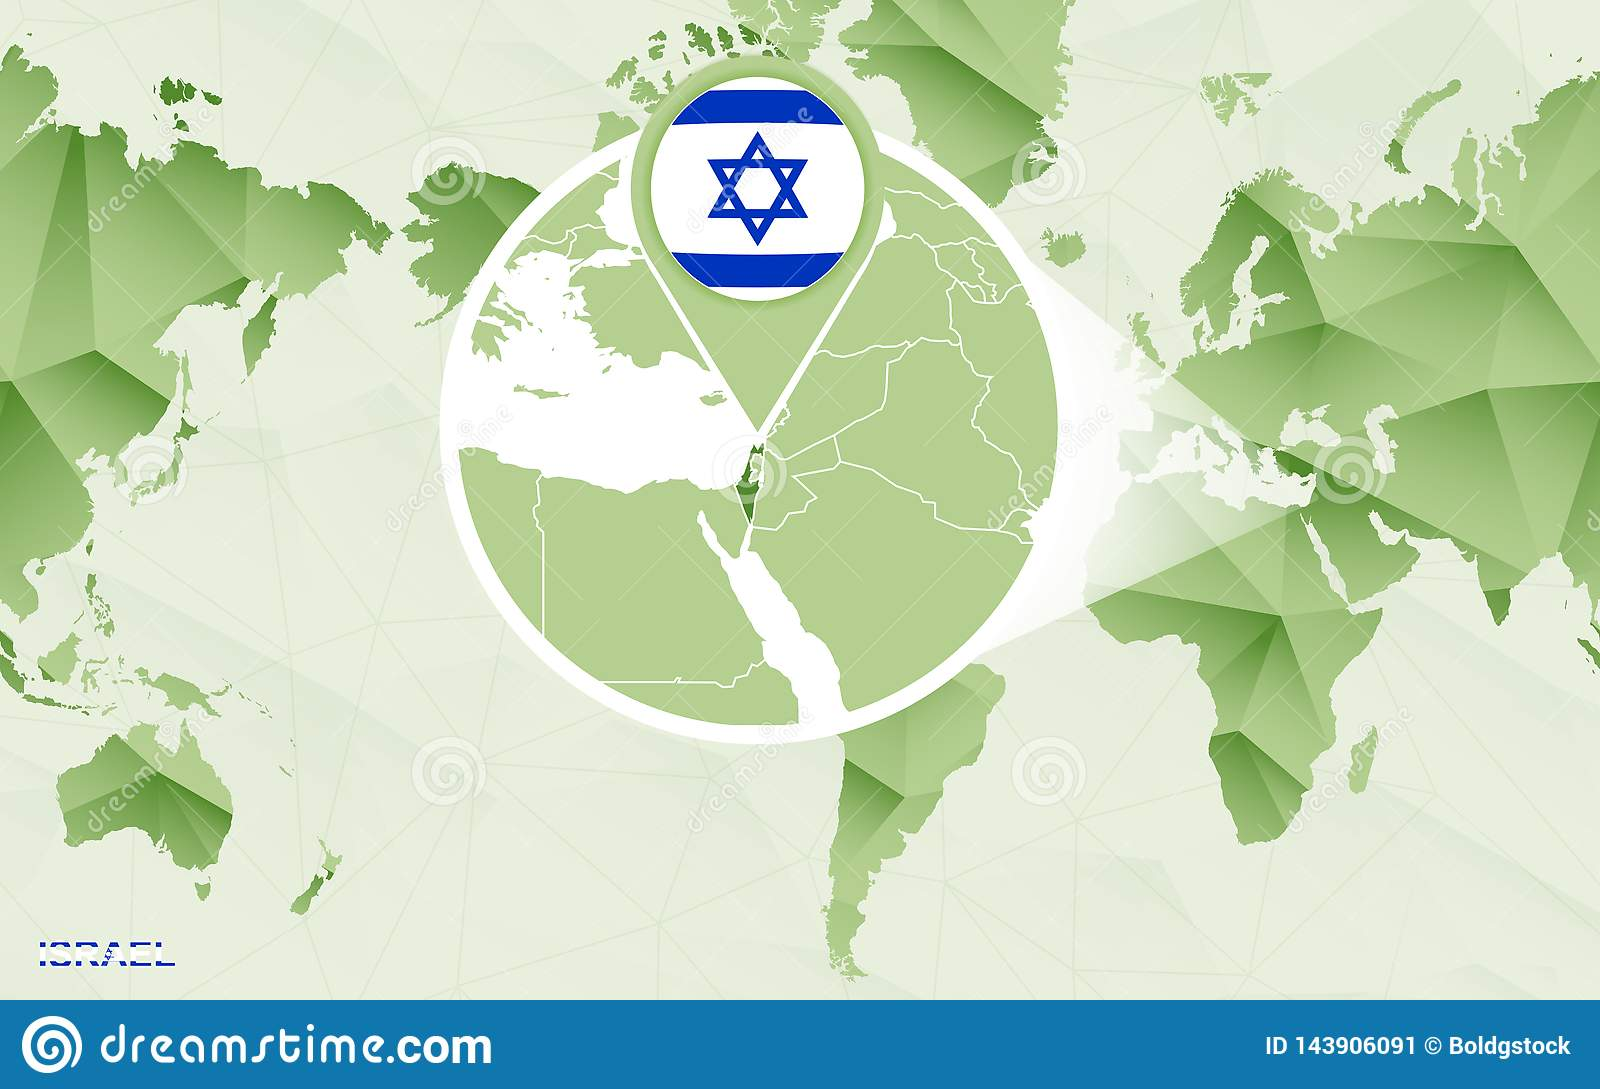 America Centric World Map With Magnified Israel Map Stock ...